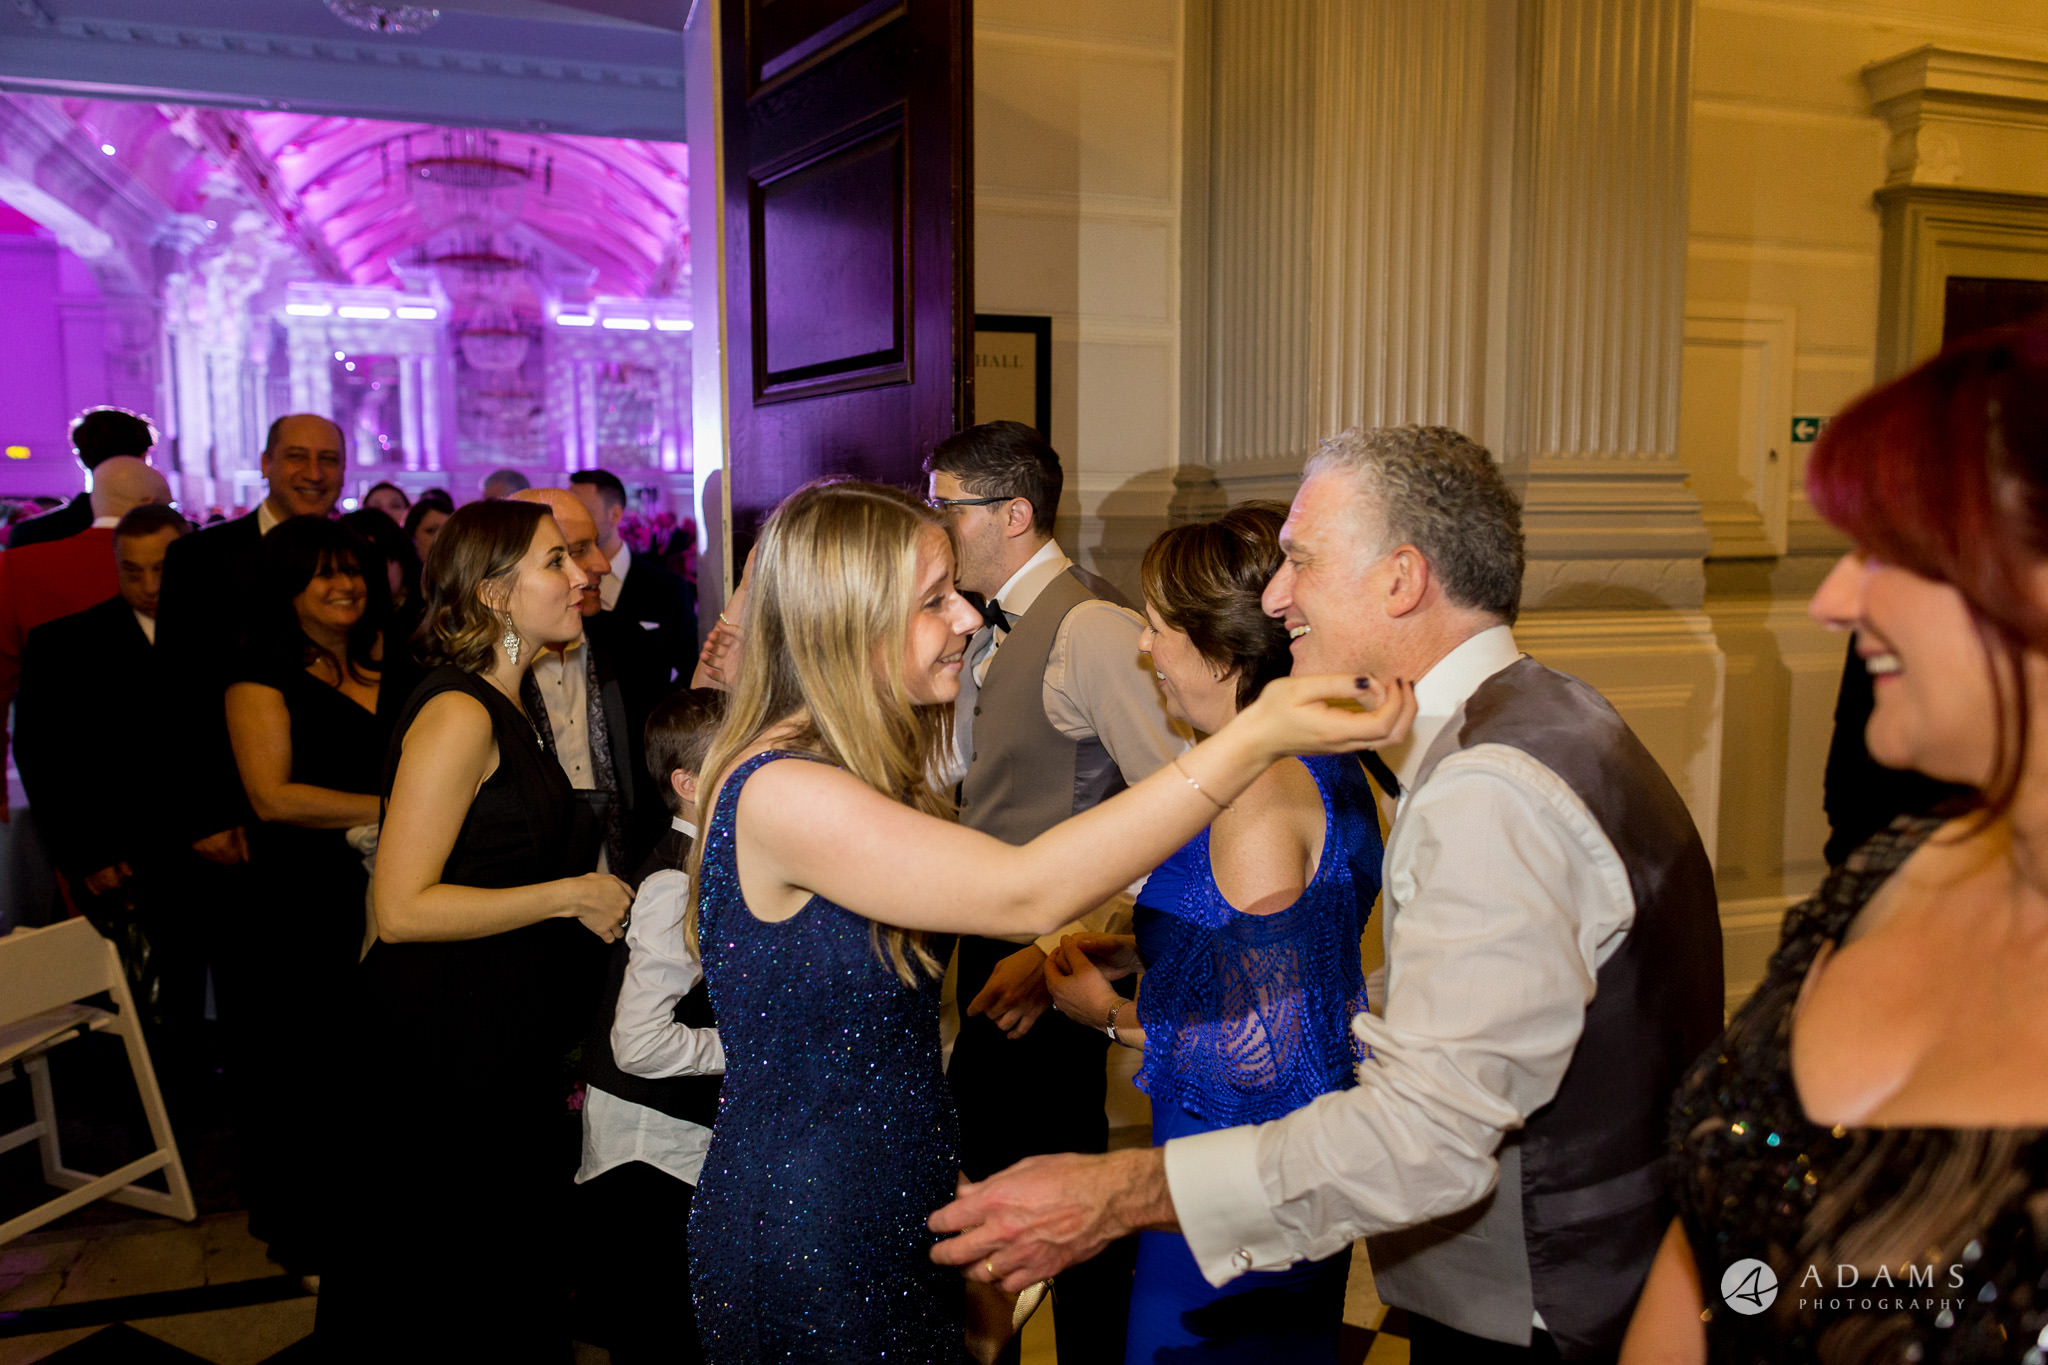 Grand connaught rooms wedding good by to guests